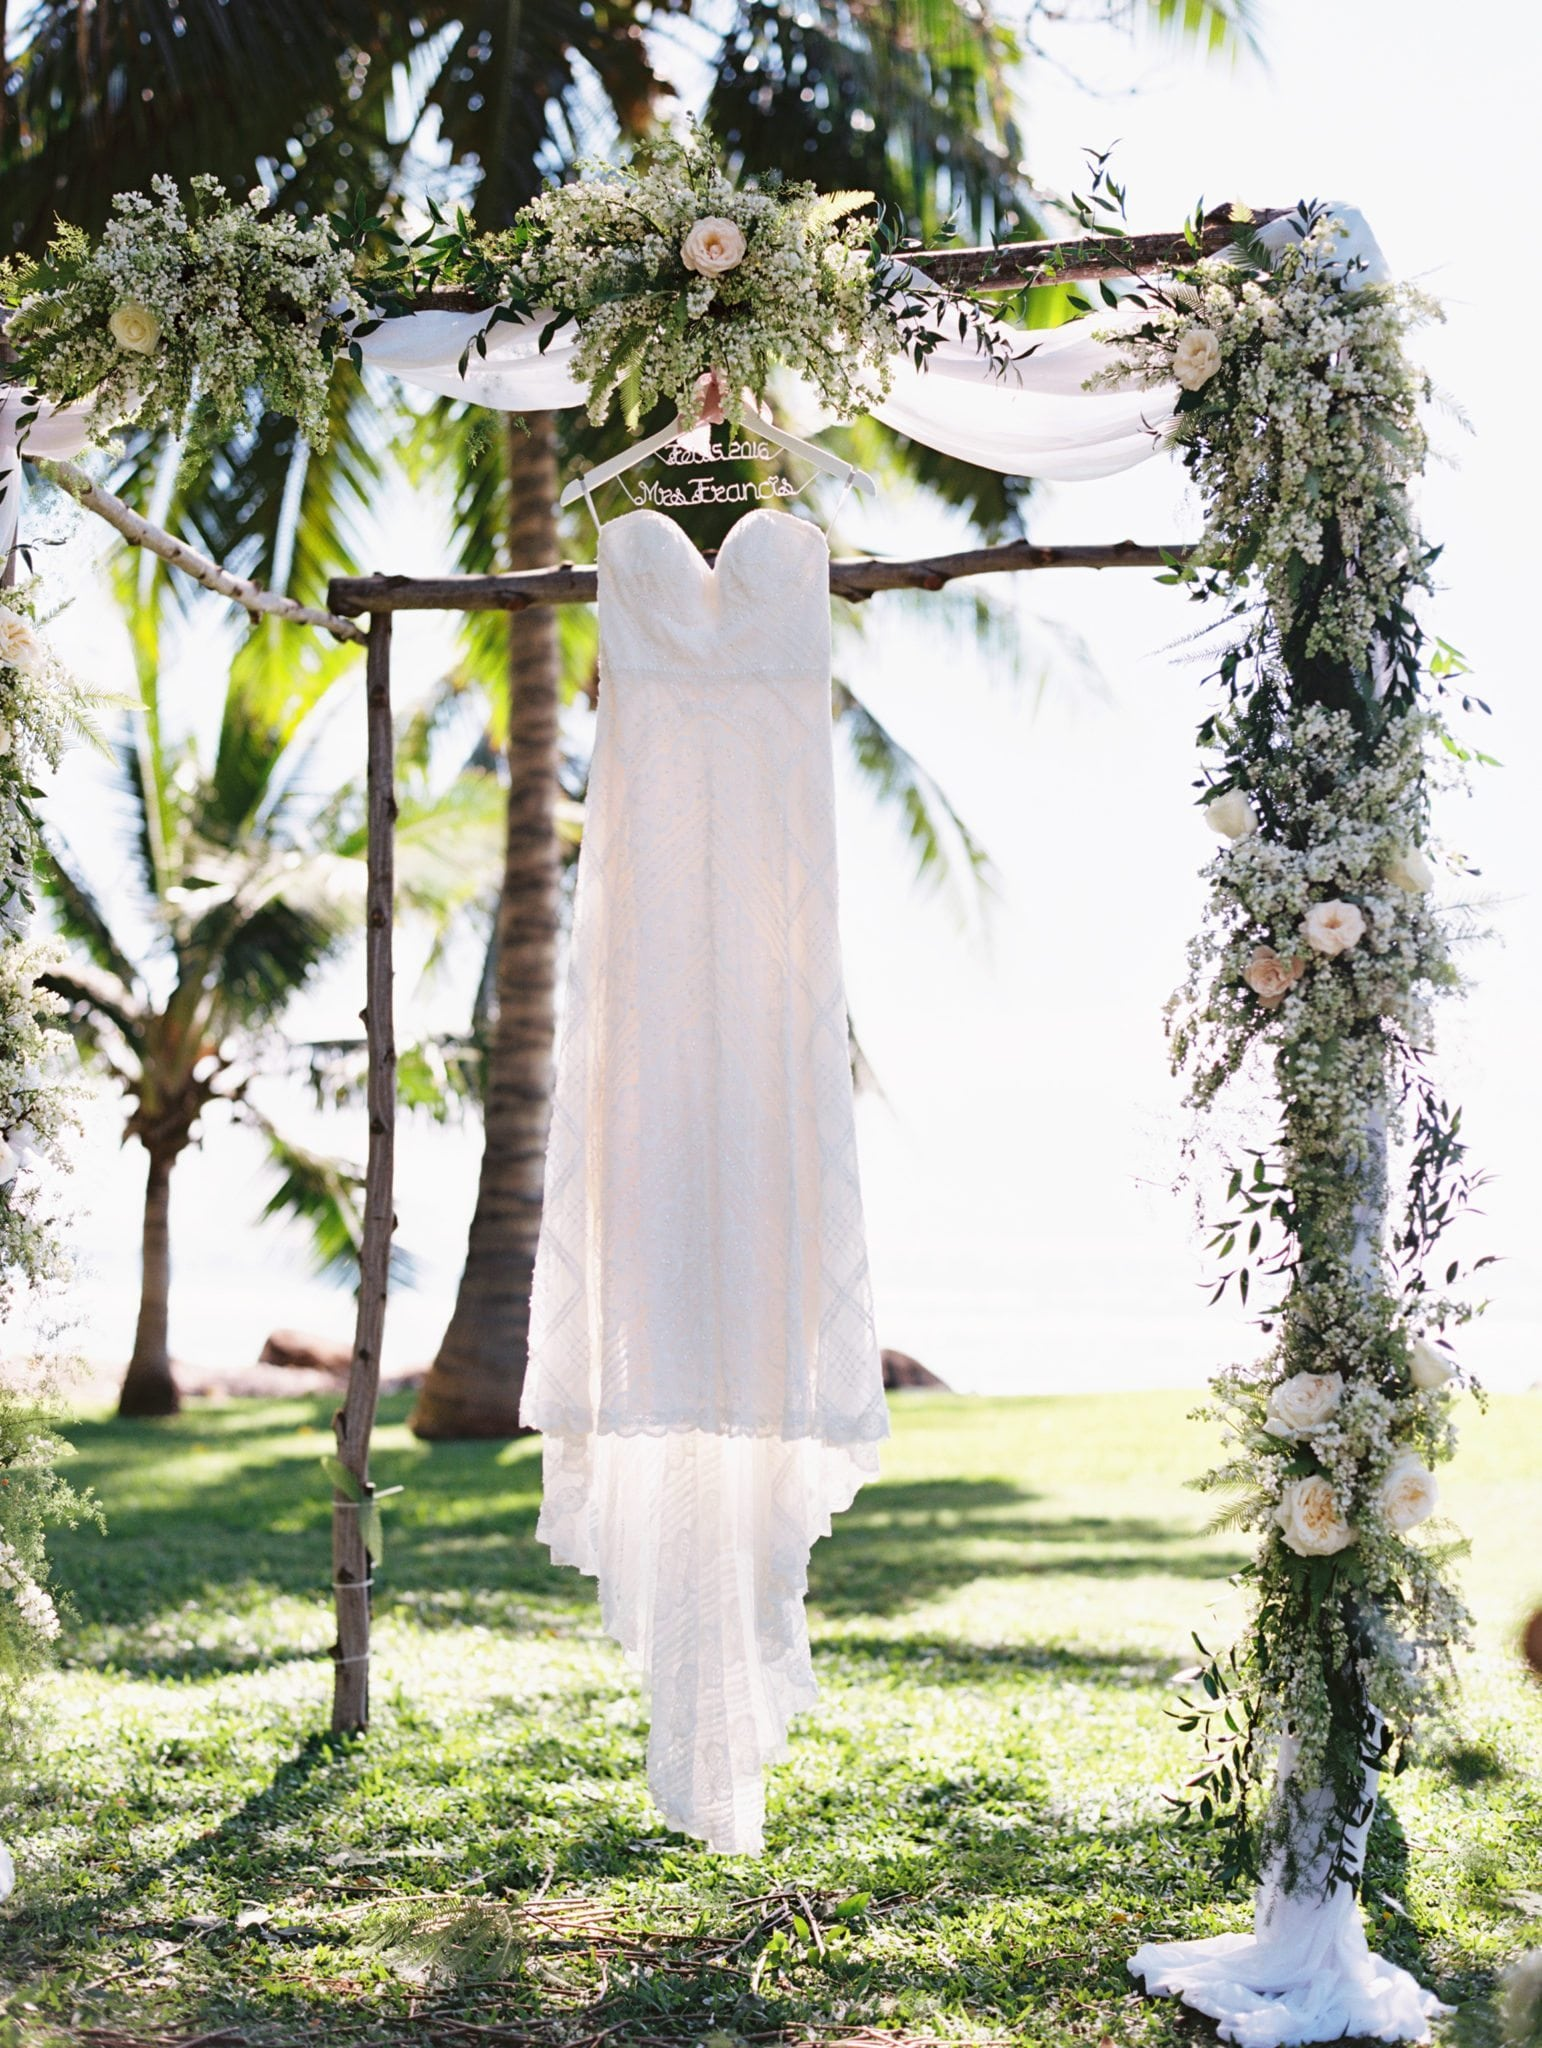 Bridal Gown and Wedding Arch in Hawaii | Maui Destination Wedding Planners | Maui's Angels